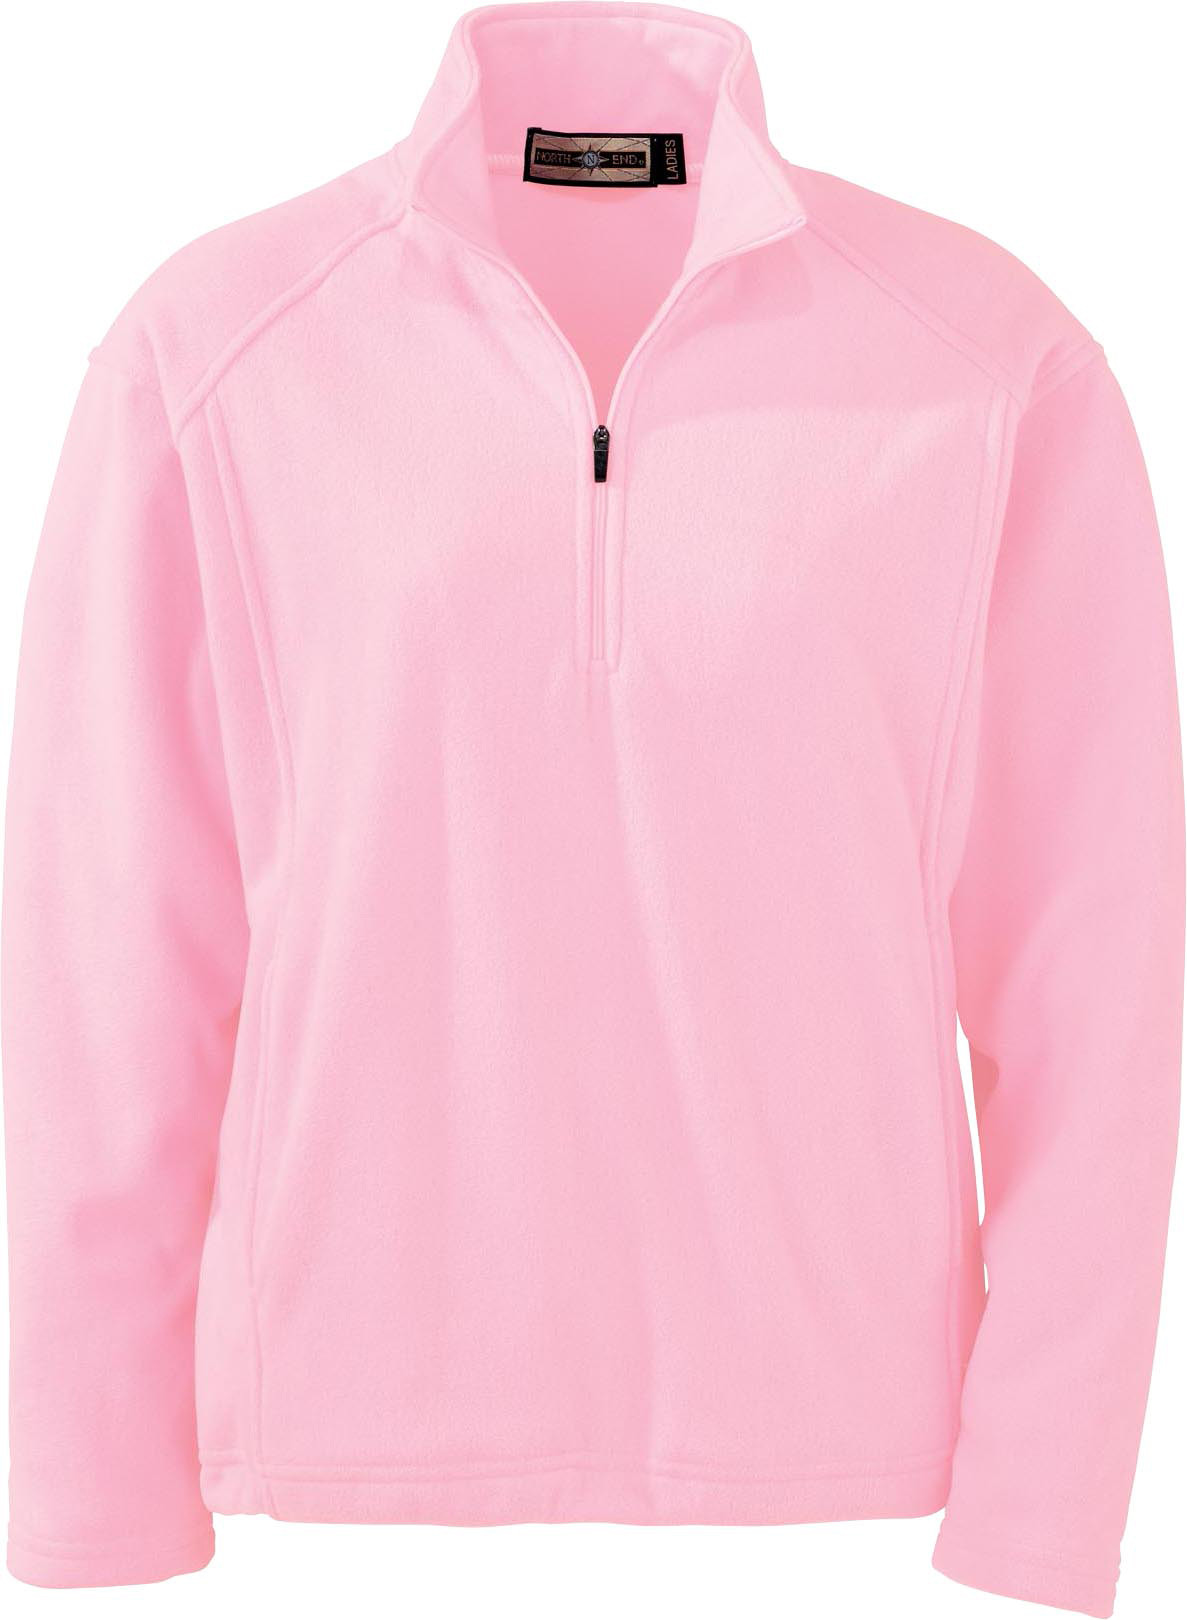 Ash City Microfleece 121403 - Ladies' Microfleece Half-...